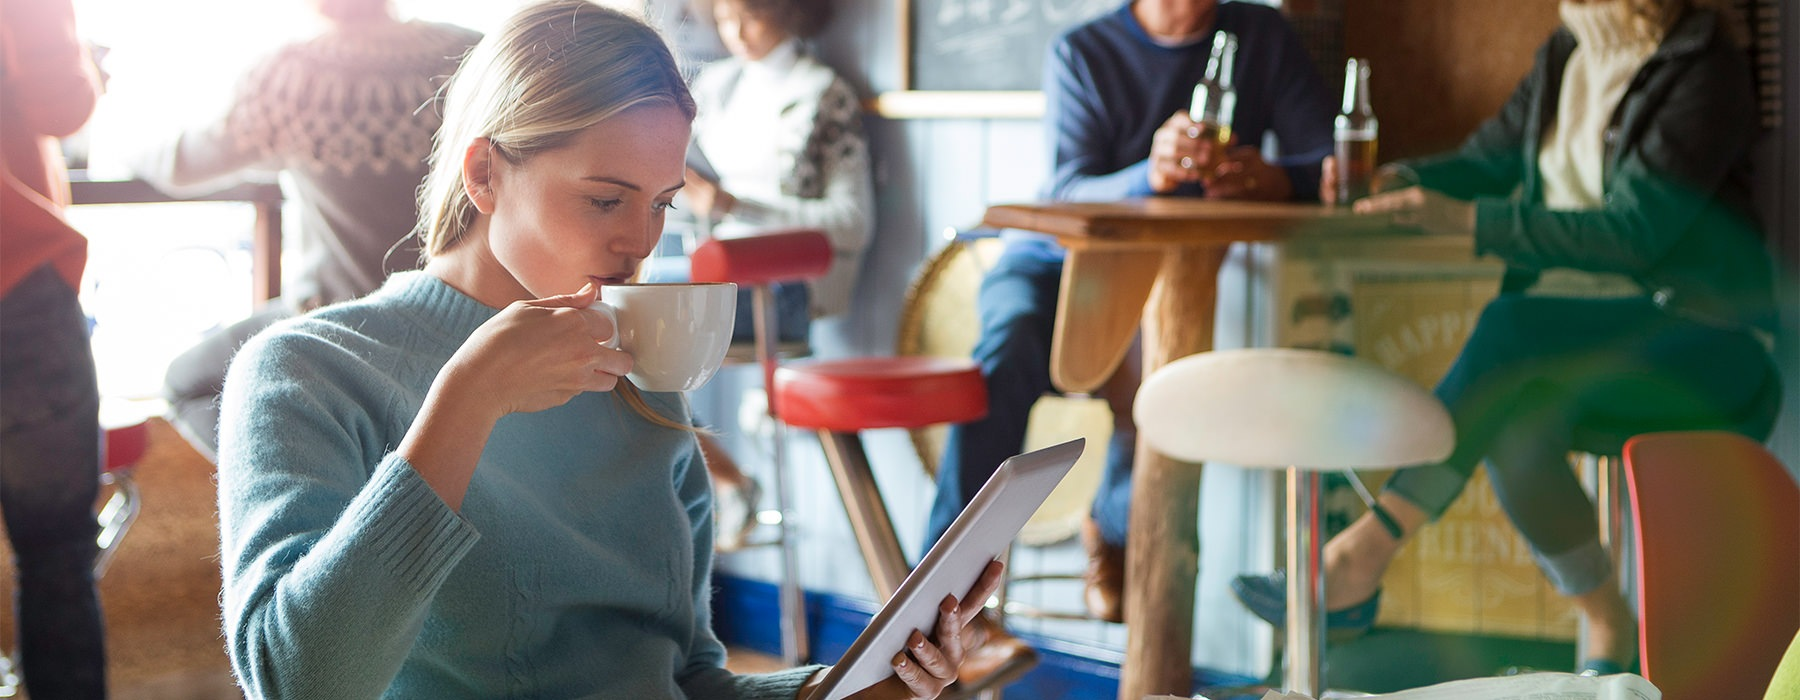 A Woman enjoying a cup of coffee and reading an ipad.